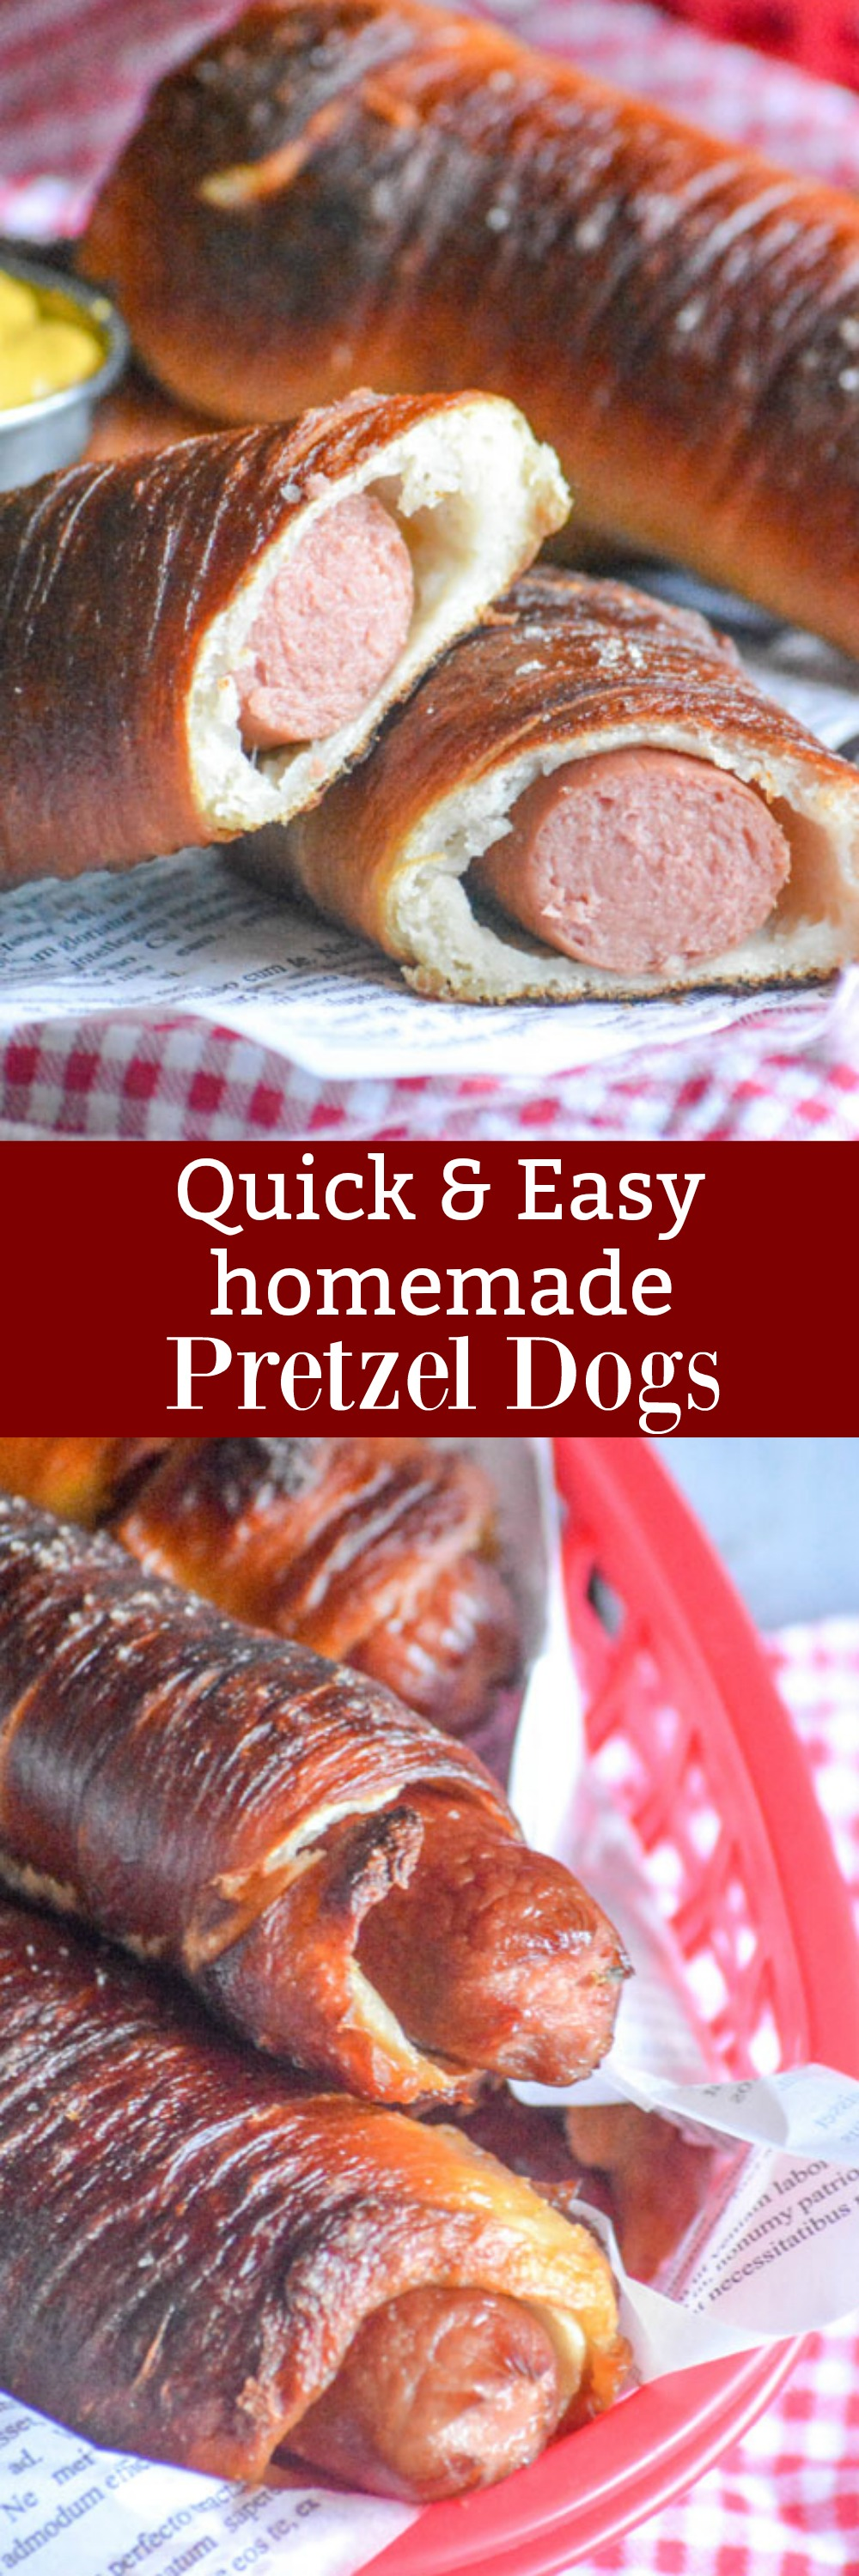 These Quick & Easy Homemade Pretzel Dogs are simply delish. Your favorite hot dogs are bundled up in buttery salted pretzel buns, making them a portable, dippable fun finger food perfect for game day appetizers, lunches, and even a hearty snack.